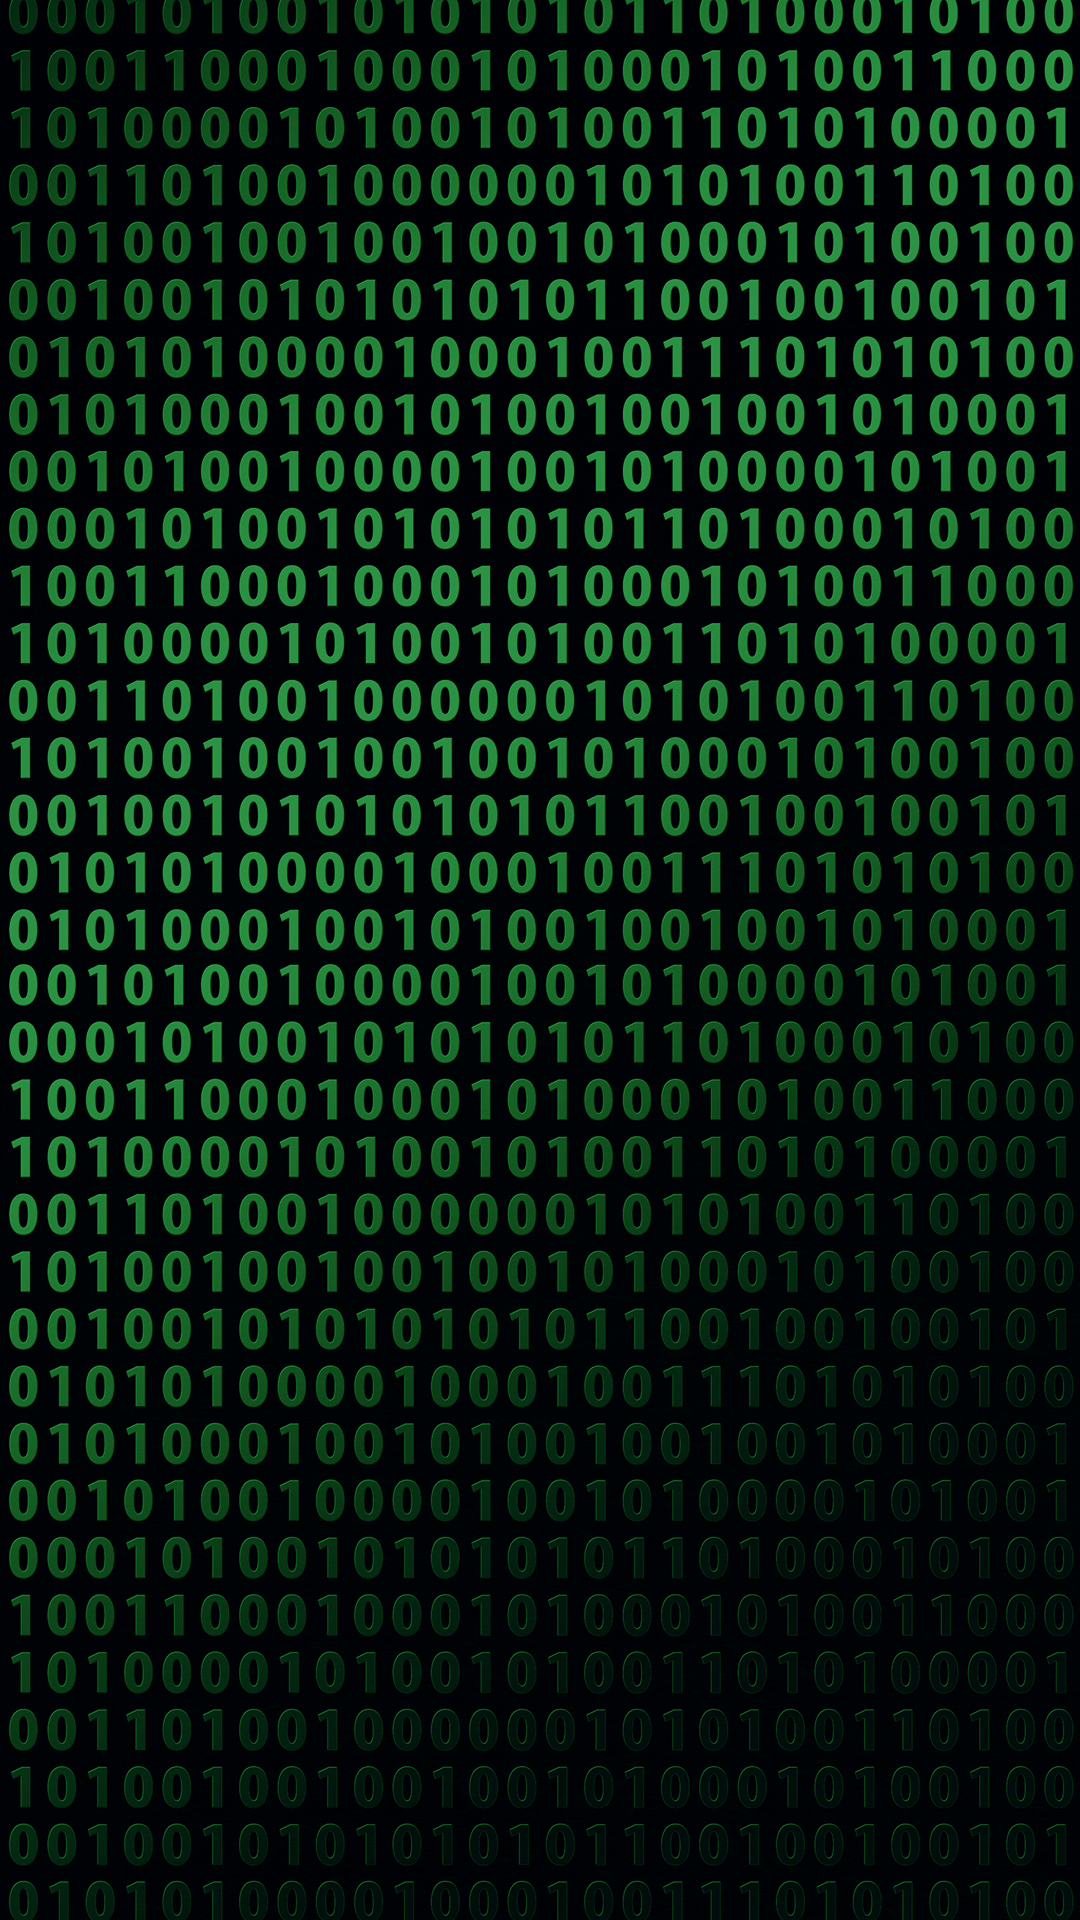 Live Binary Code Wallpapers Top Free Live Binary Code Backgrounds